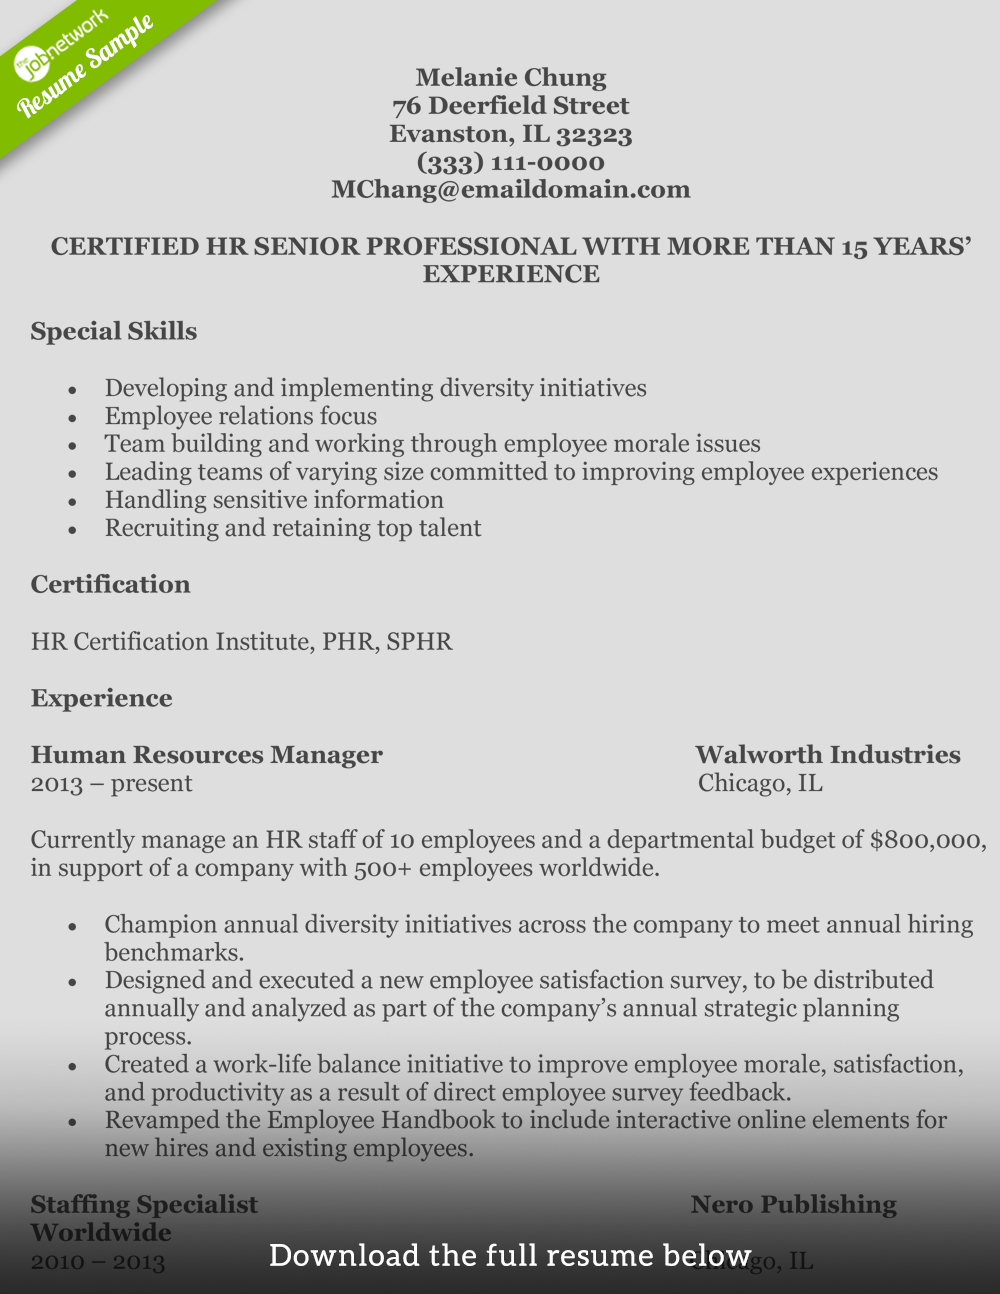 Human Resources Resume Melanie